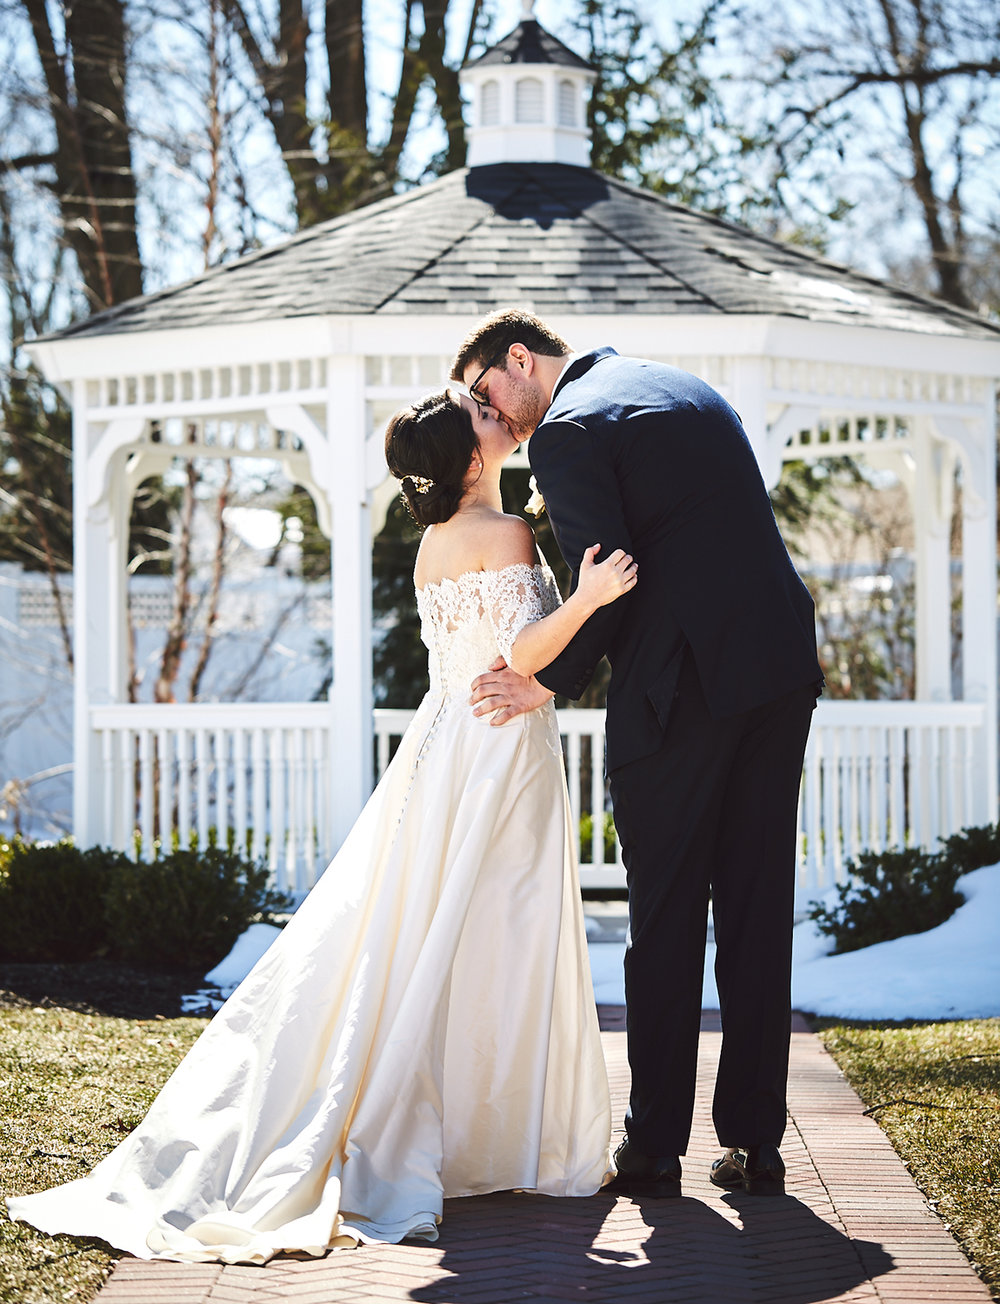 180324_StonehouseatStirlingRidgeWeddingPhotography_NJWeddingPhotographer_By_BriJohnsonWeddings_0051.jpg